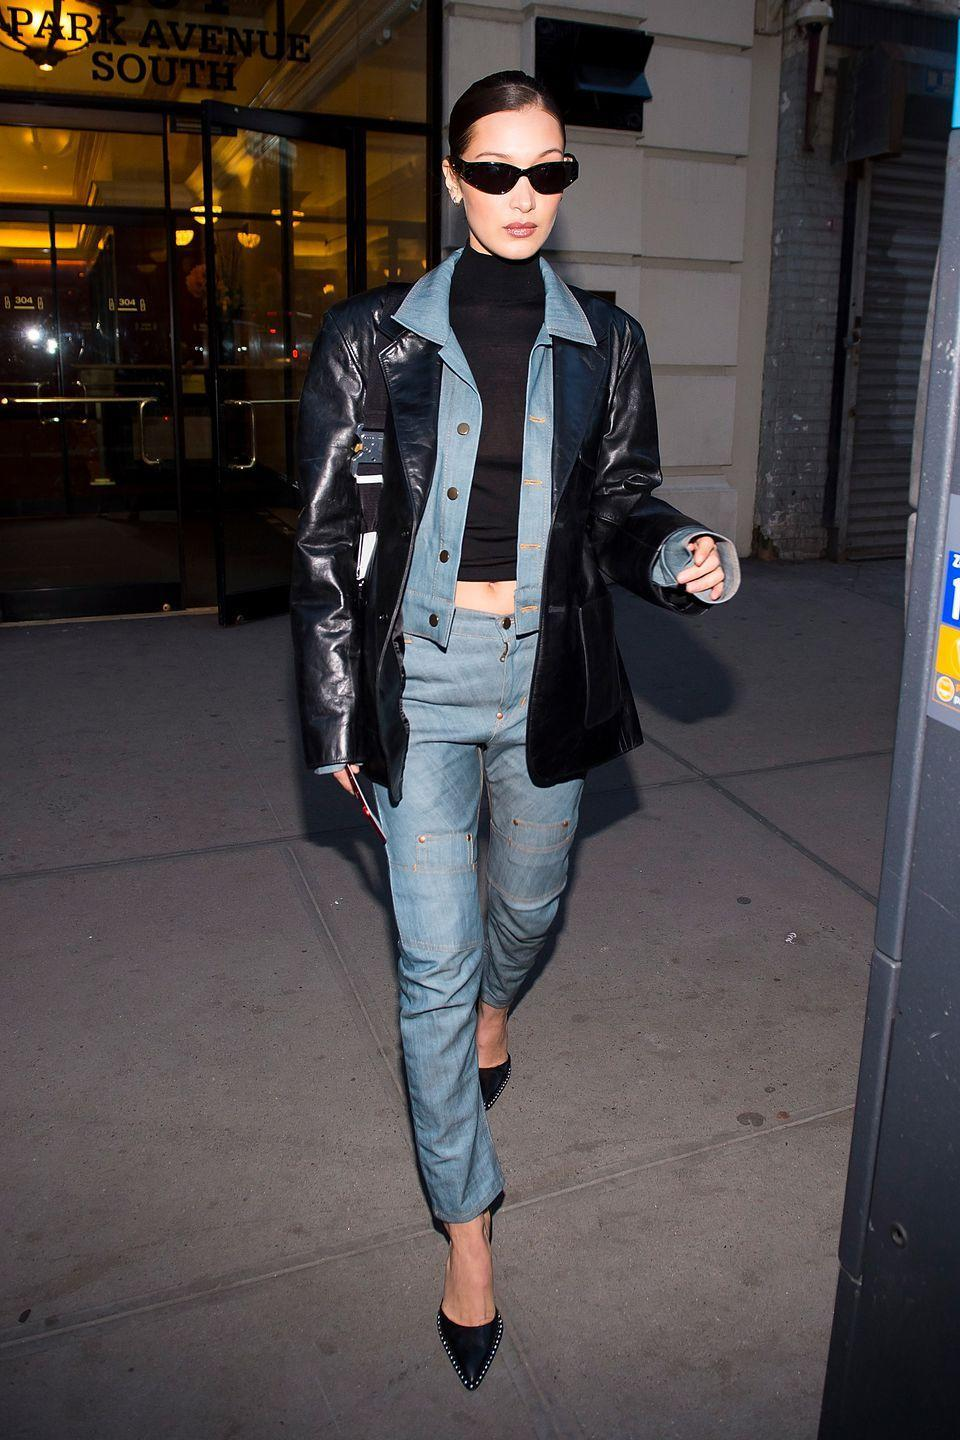 """<p>Take note from model of the moment Bella Hadid and layer a leather jacket over your denim for that '90s <em>Matrix</em> look on a chilly night. </p><p><em>Helmut Lang leather jacket, $2,029, <a href=""""https://www.farfetch.com/shopping/women/helmut-lang-relaxed-fit-leather-blazer-jacket-item-13497432.aspx?storeid=9359"""" rel=""""nofollow noopener"""" target=""""_blank"""" data-ylk=""""slk:farfetch.com"""" class=""""link rapid-noclick-resp"""">farfetch.com</a>.</em></p><p><a class=""""link rapid-noclick-resp"""" href=""""https://www.farfetch.com/shopping/women/helmut-lang-relaxed-fit-leather-blazer-jacket-item-13497432.aspx?storeid=9359"""" rel=""""nofollow noopener"""" target=""""_blank"""" data-ylk=""""slk:SHOP"""">SHOP</a><br></p><p><em>GRLFRND denim jacket, $258, <a href=""""http://www.revolve.com/grlfrnd-cara-cropped-denim-jacket/dp/GRLR-WO3/?product=GRLR-WO3&fbreq=el"""" rel=""""nofollow noopener"""" target=""""_blank"""" data-ylk=""""slk:nordstrom.com"""" class=""""link rapid-noclick-resp"""">nordstrom.com</a>.</em></p><p><a class=""""link rapid-noclick-resp"""" href=""""http://www.revolve.com/grlfrnd-cara-cropped-denim-jacket/dp/GRLR-WO3/?product=GRLR-WO3&fbreq=el"""" rel=""""nofollow noopener"""" target=""""_blank"""" data-ylk=""""slk:SHOP"""">SHOP</a><br></p>"""